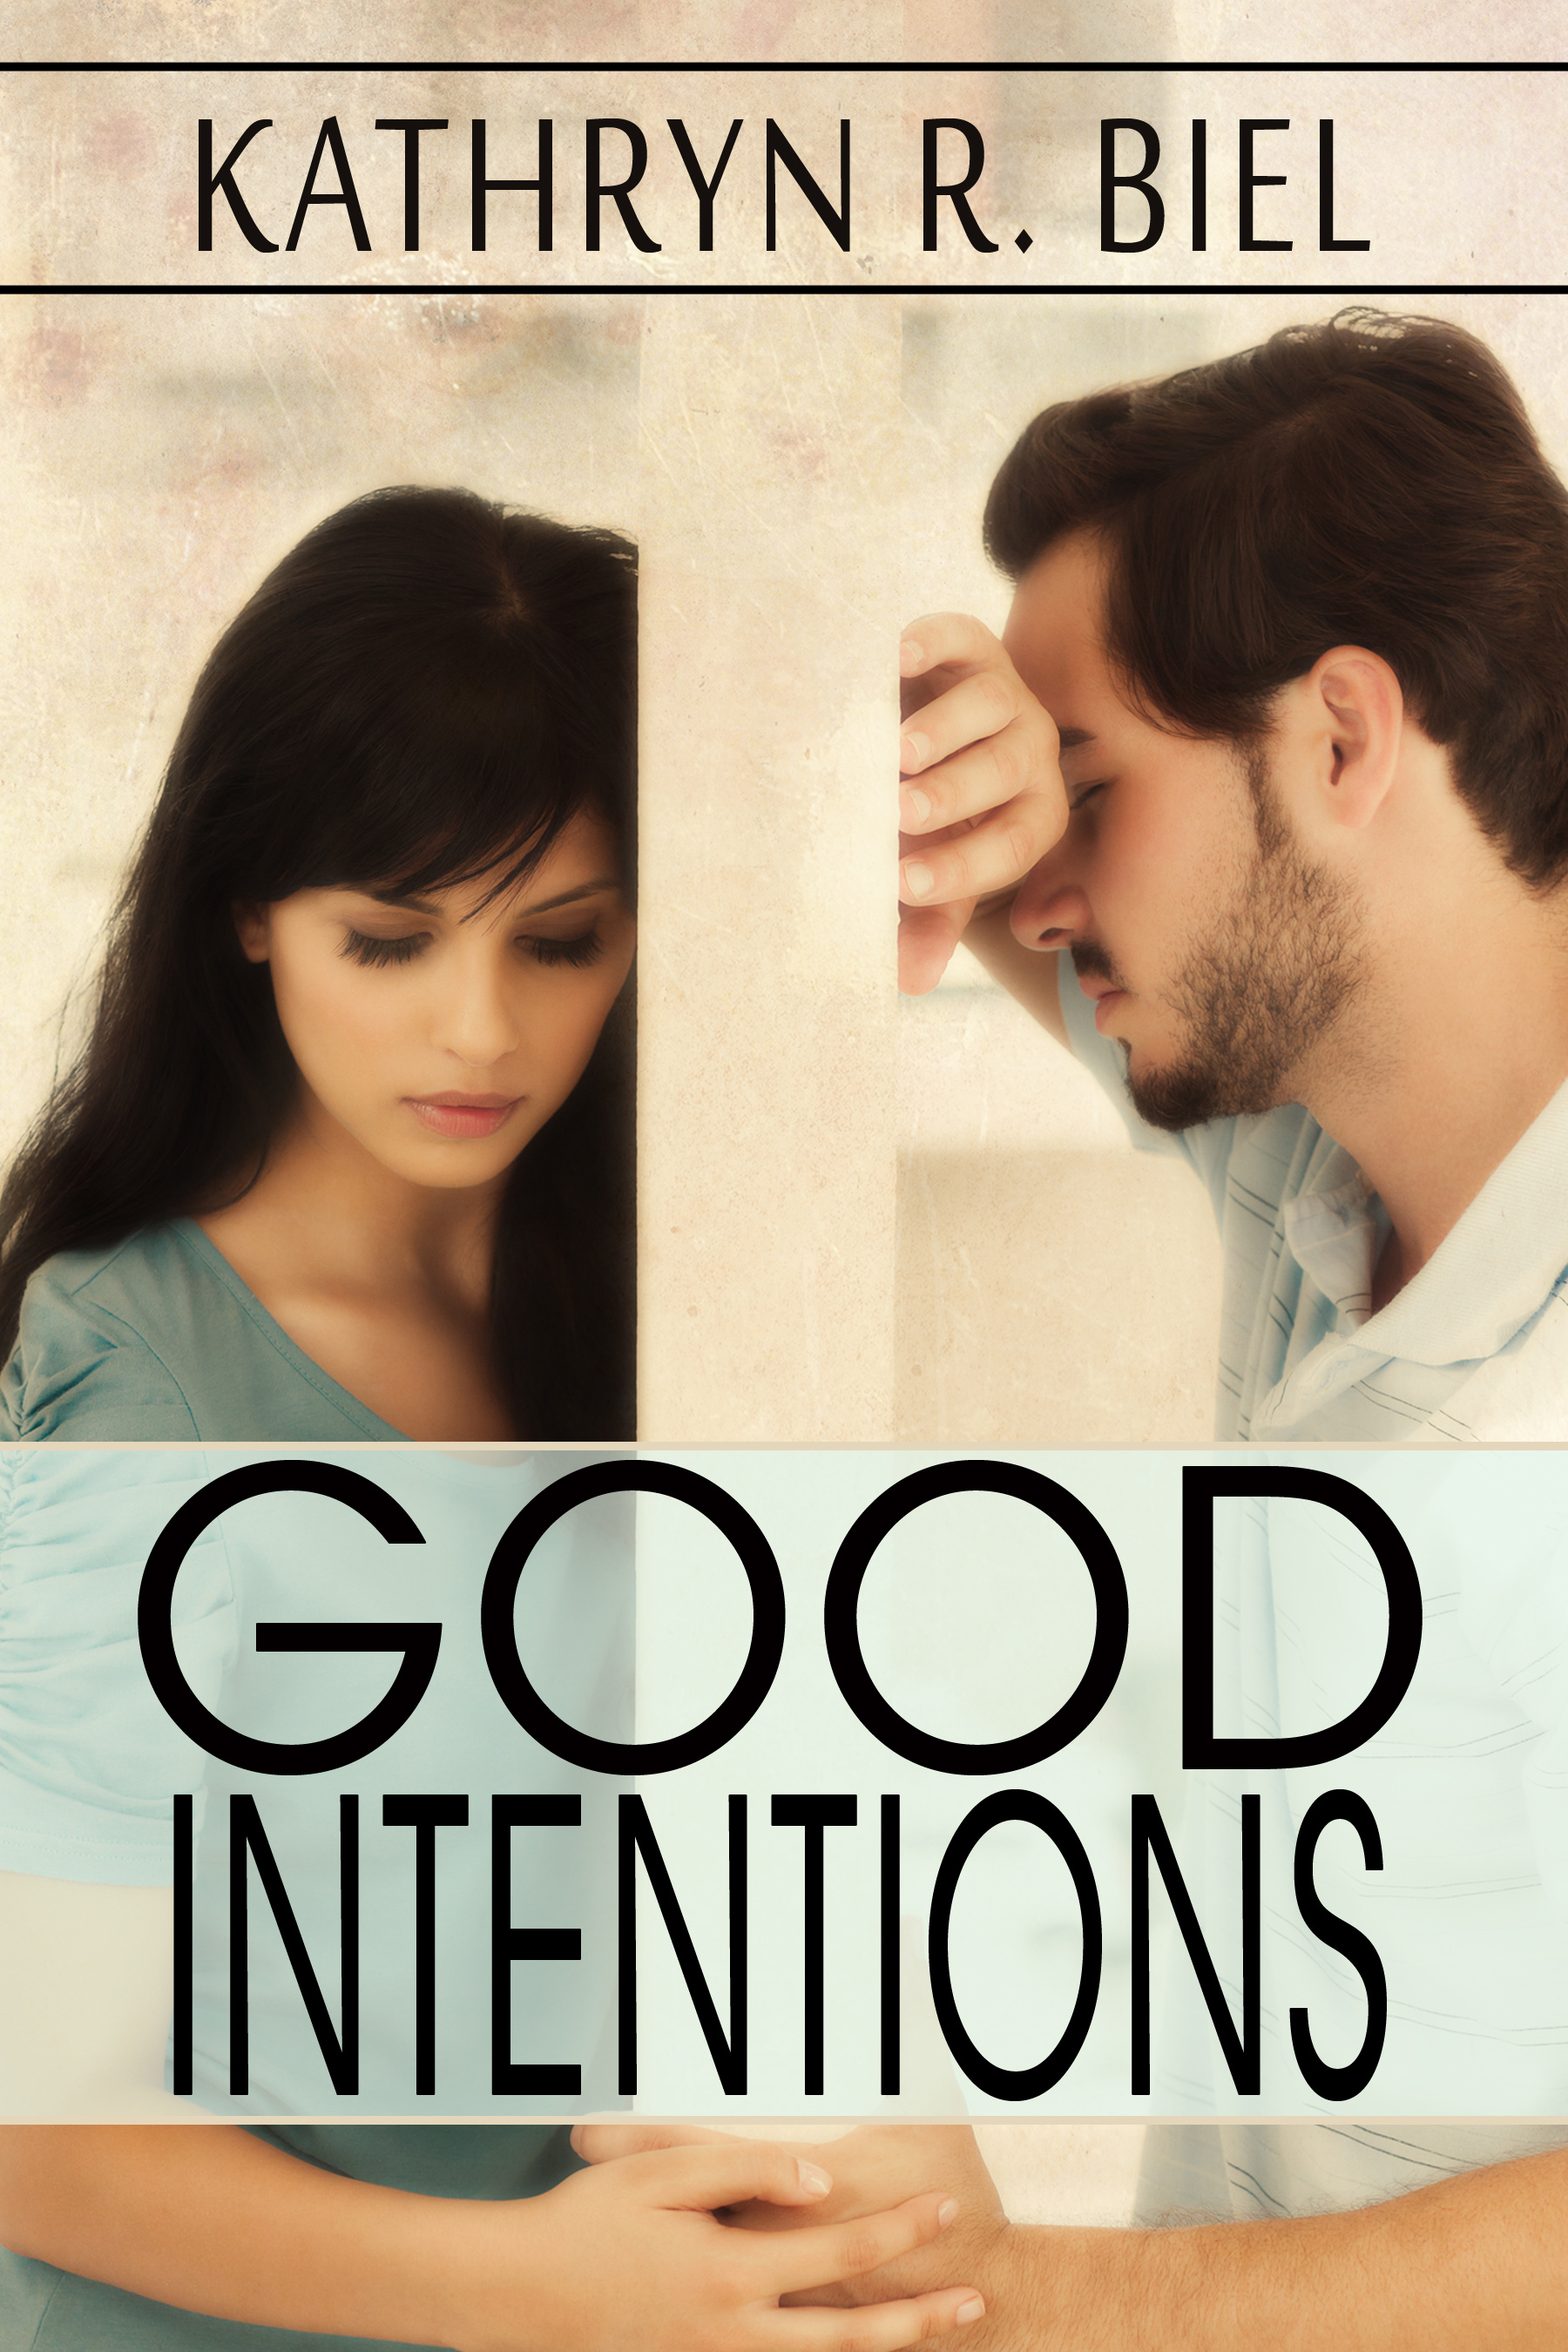 Another version of Good Intentions